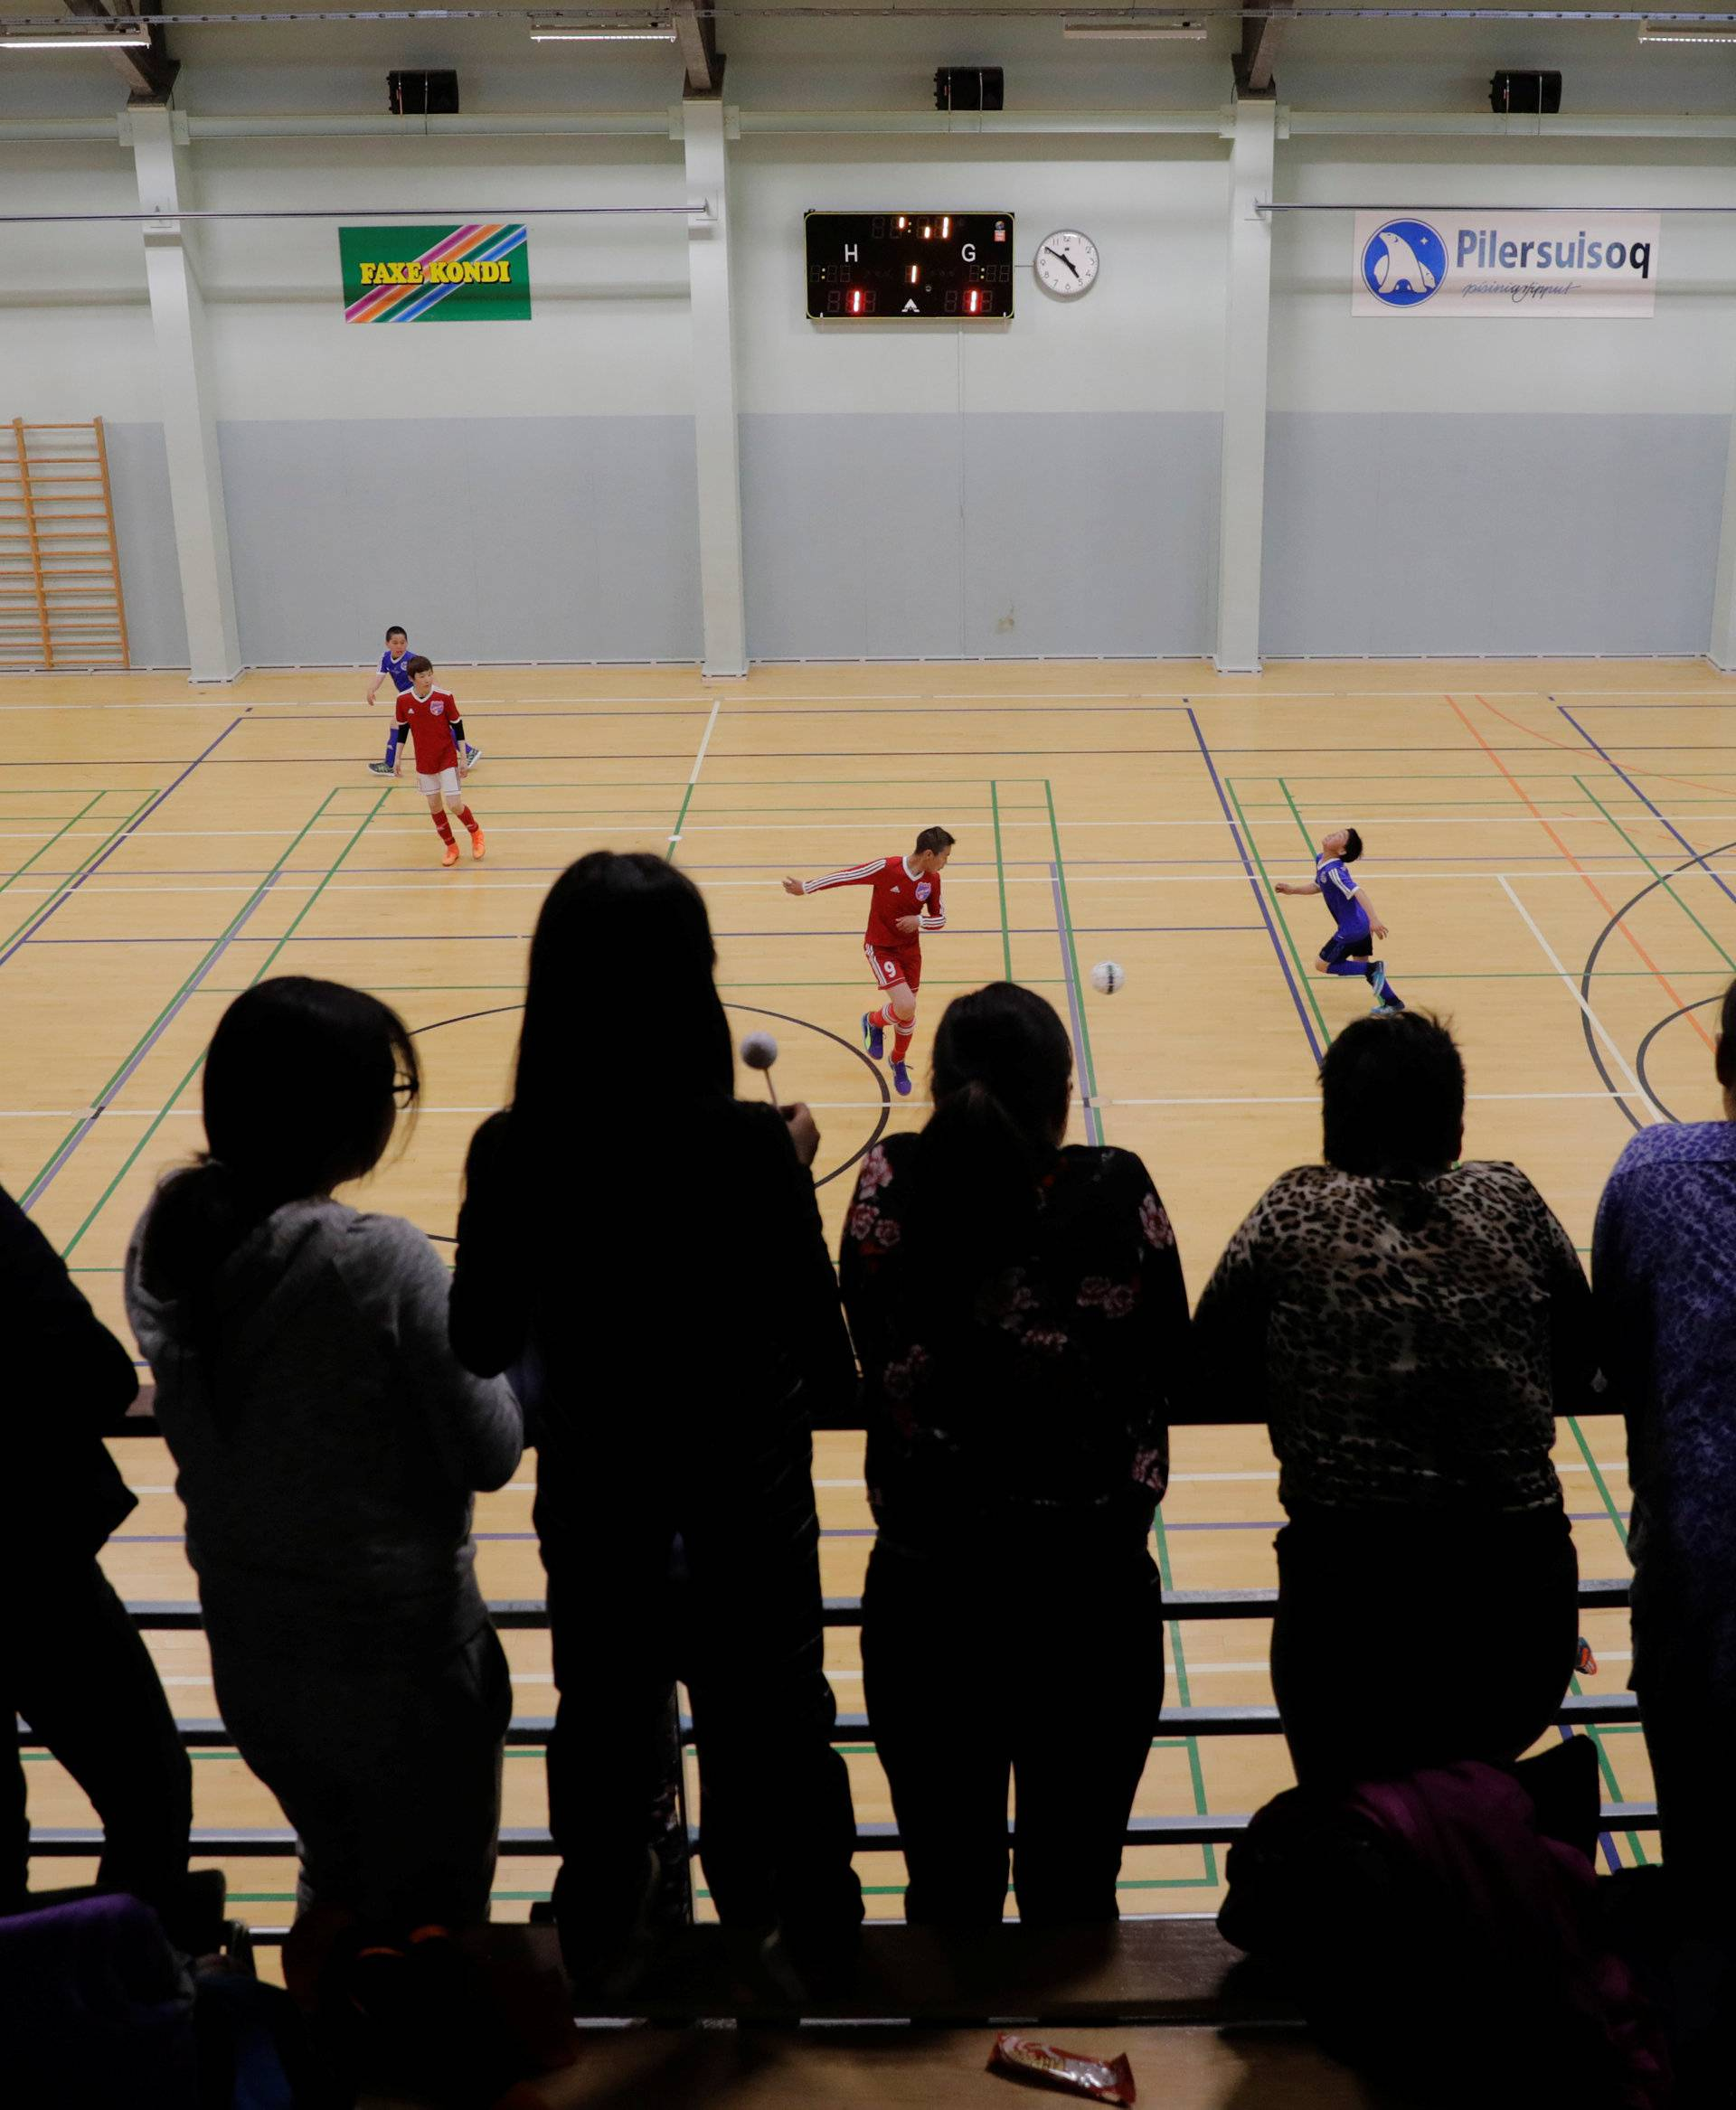 Residents watch an indoor soccer tournament in Tasiilaq, Greenland